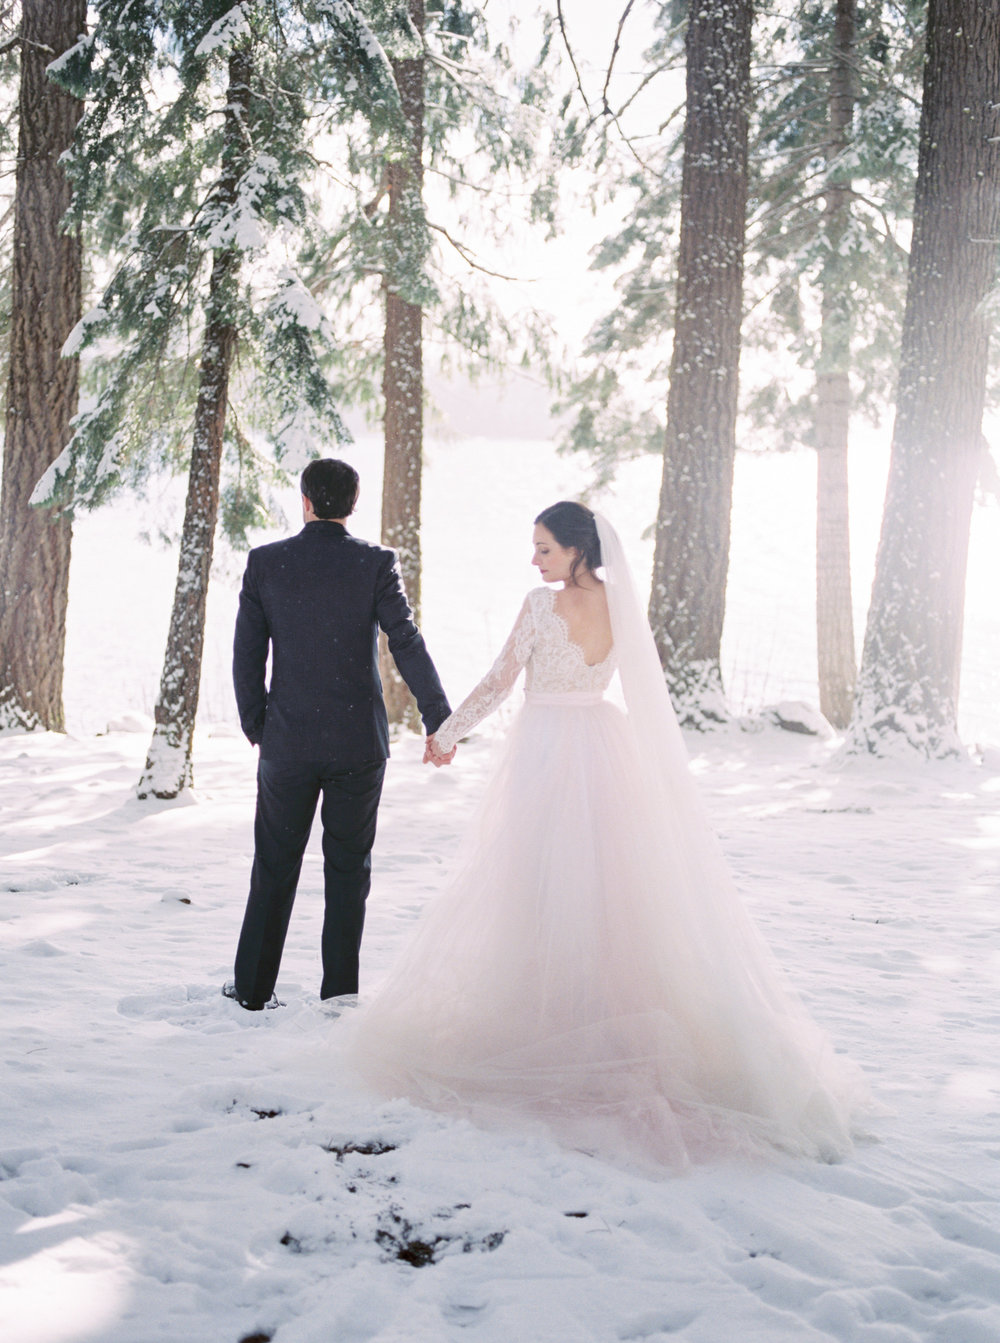 Biller Bridal Session-Biller Bridal Session-0147.jpg